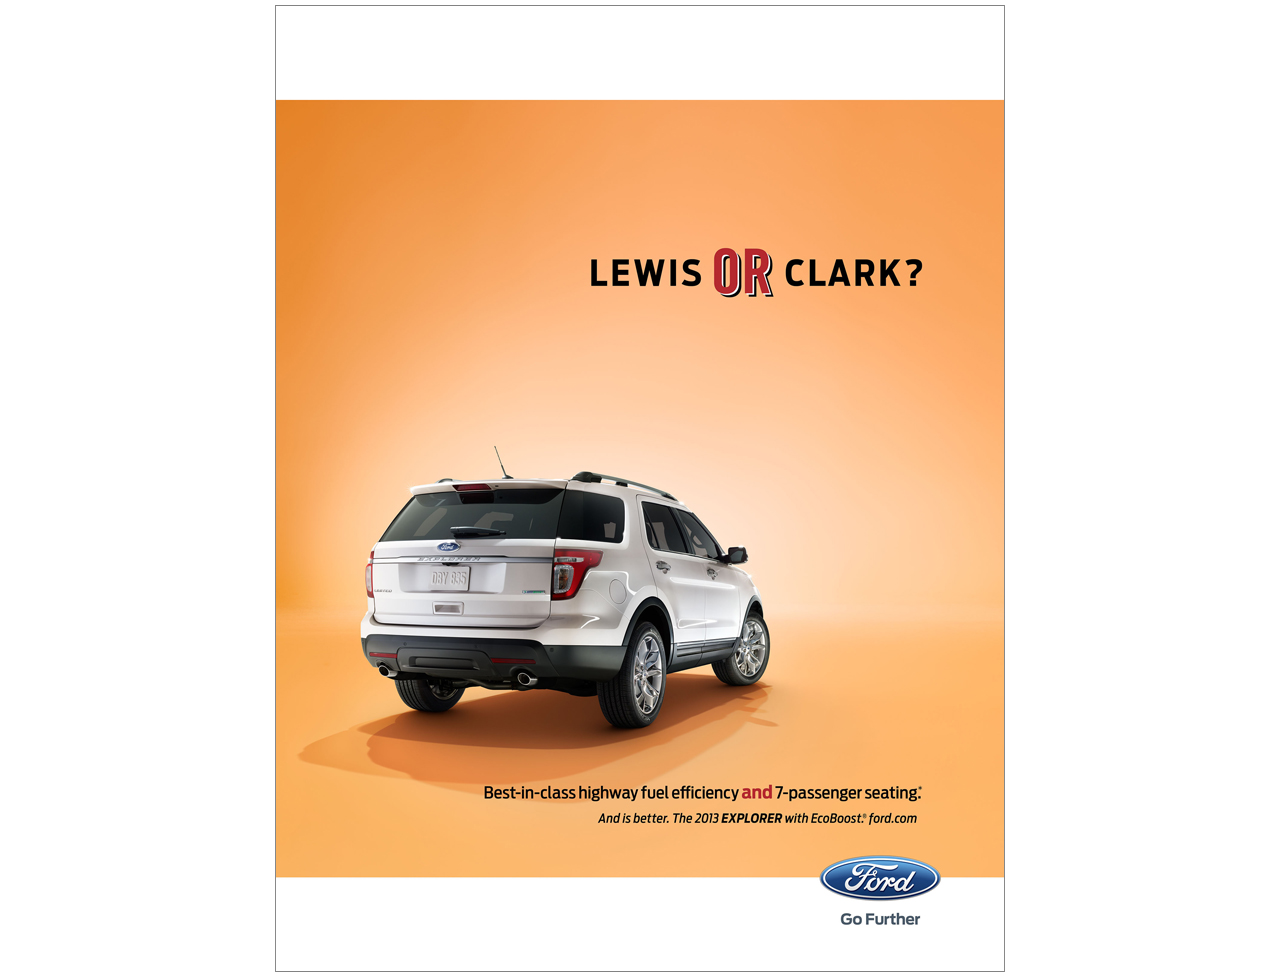 Lewis And Clark Ford >> 79 Nick Meek Ford Lewis Or Clark Nick Meek